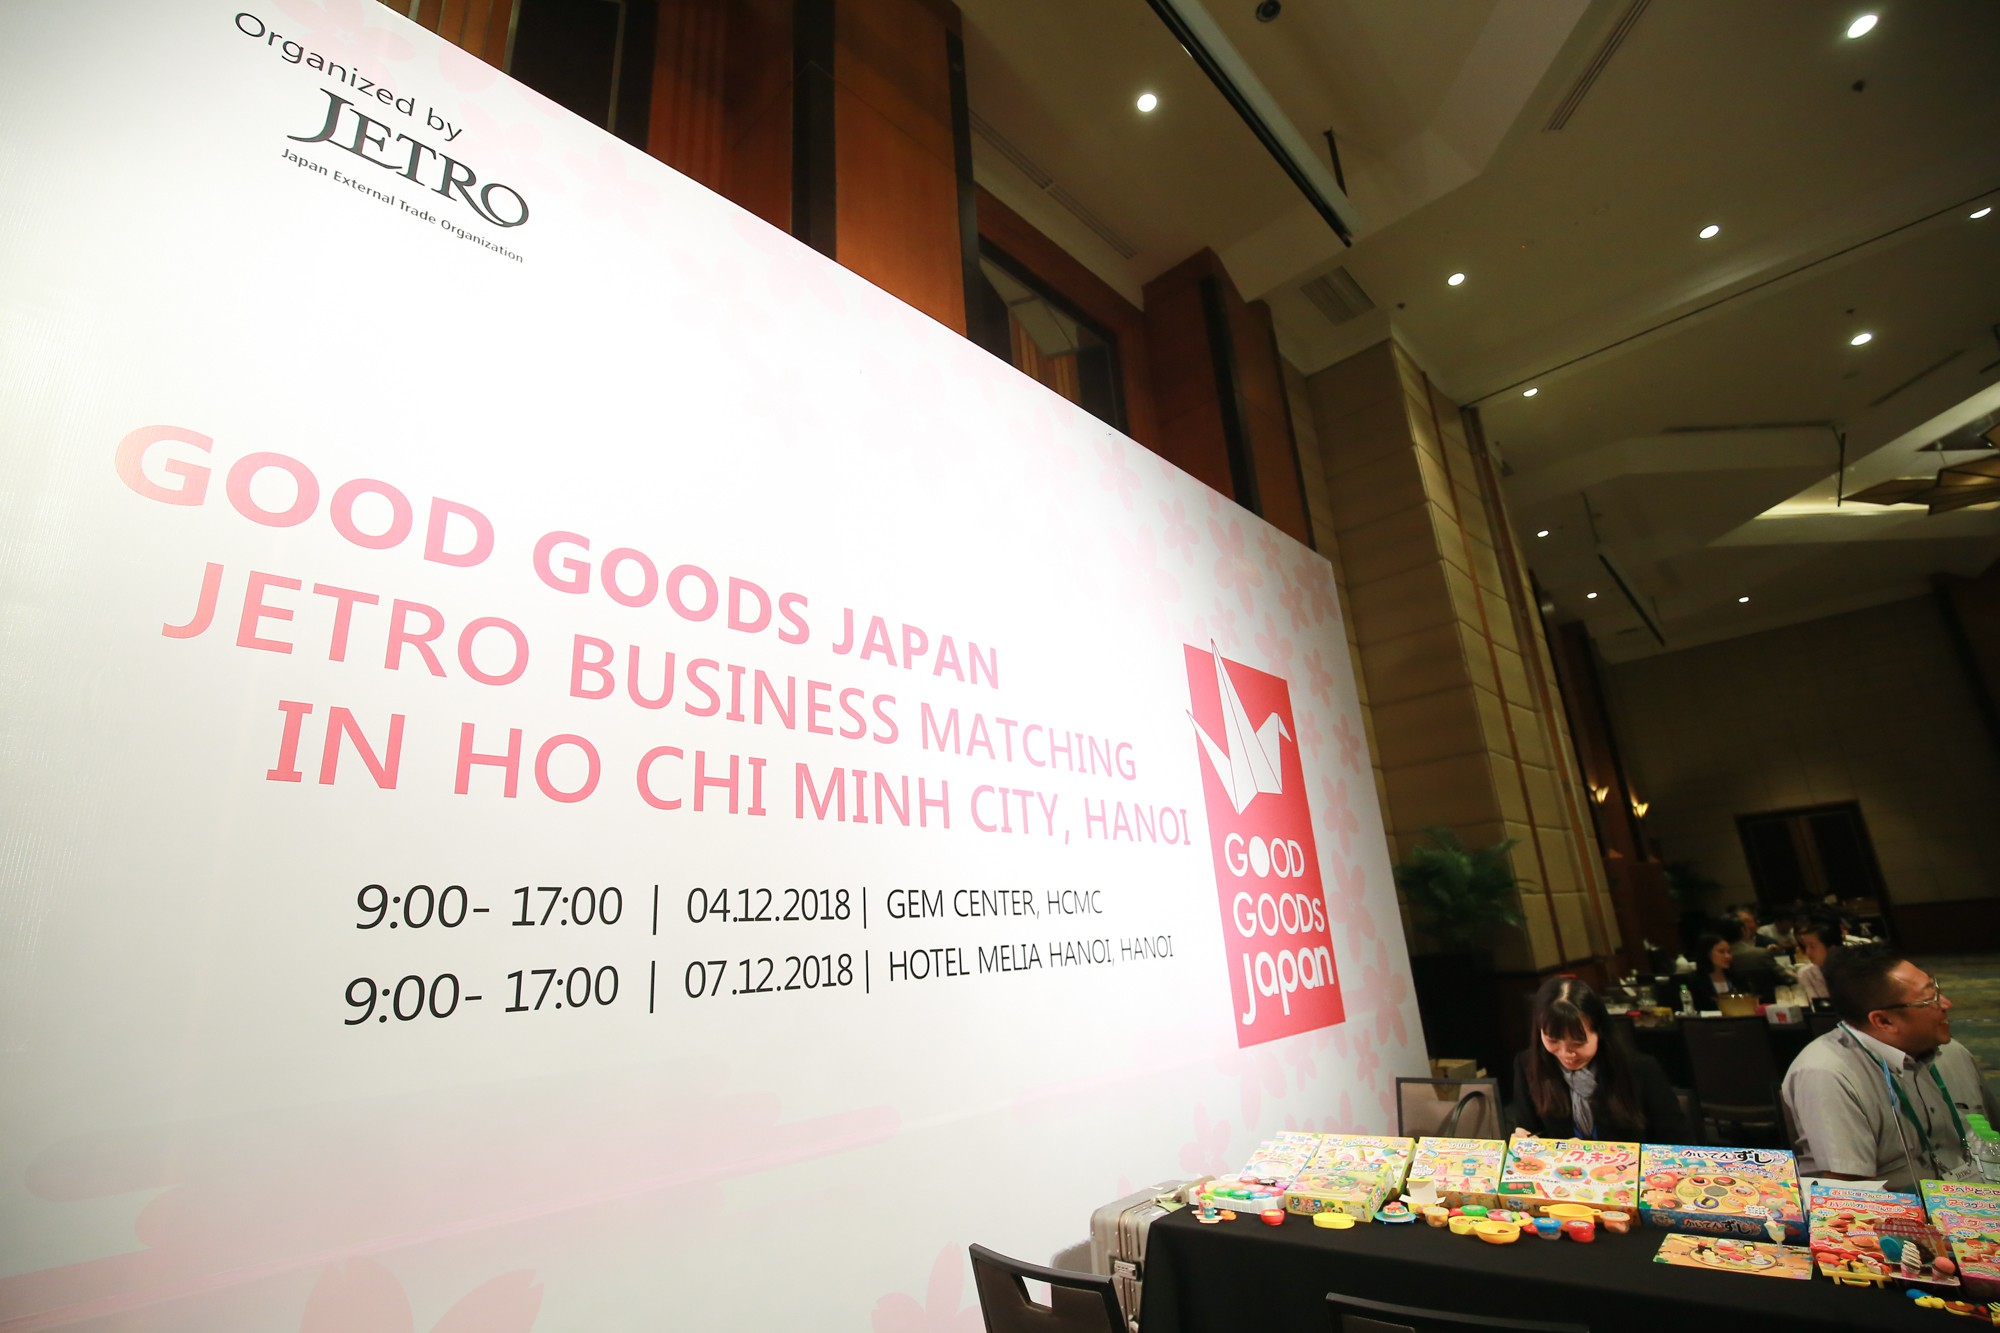 A banner for 'Good Goods Japan' is seen in Hanoi, Vietnam. Photo: Tuoi Tre